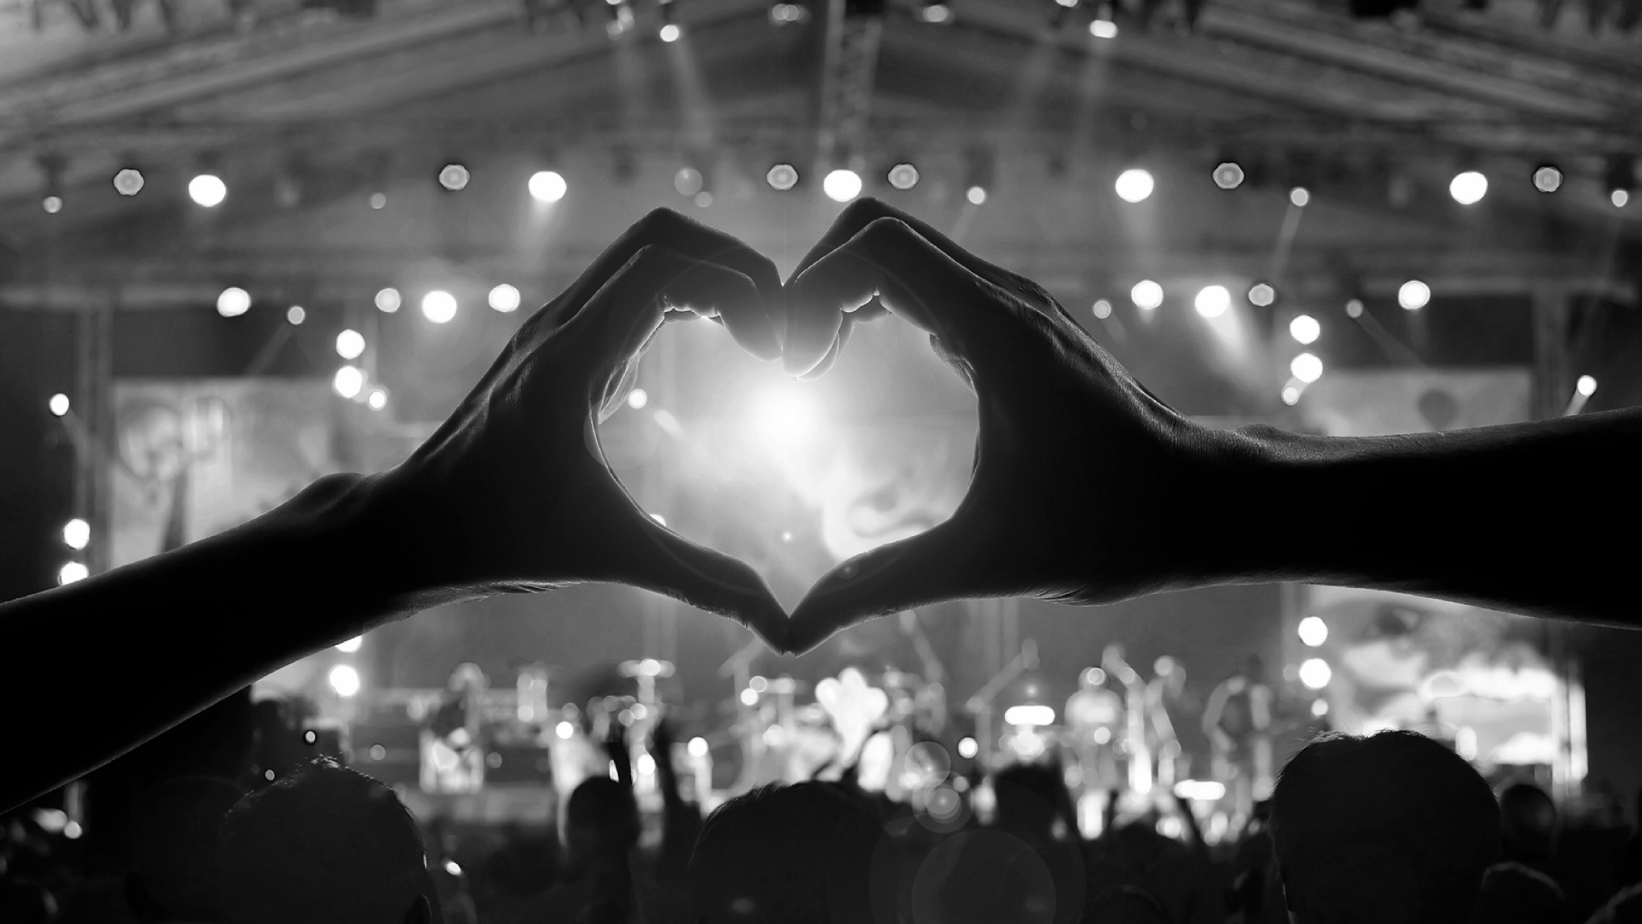 MusiCares Announces Final COVID-19 Relief Funding of $ 2 Million